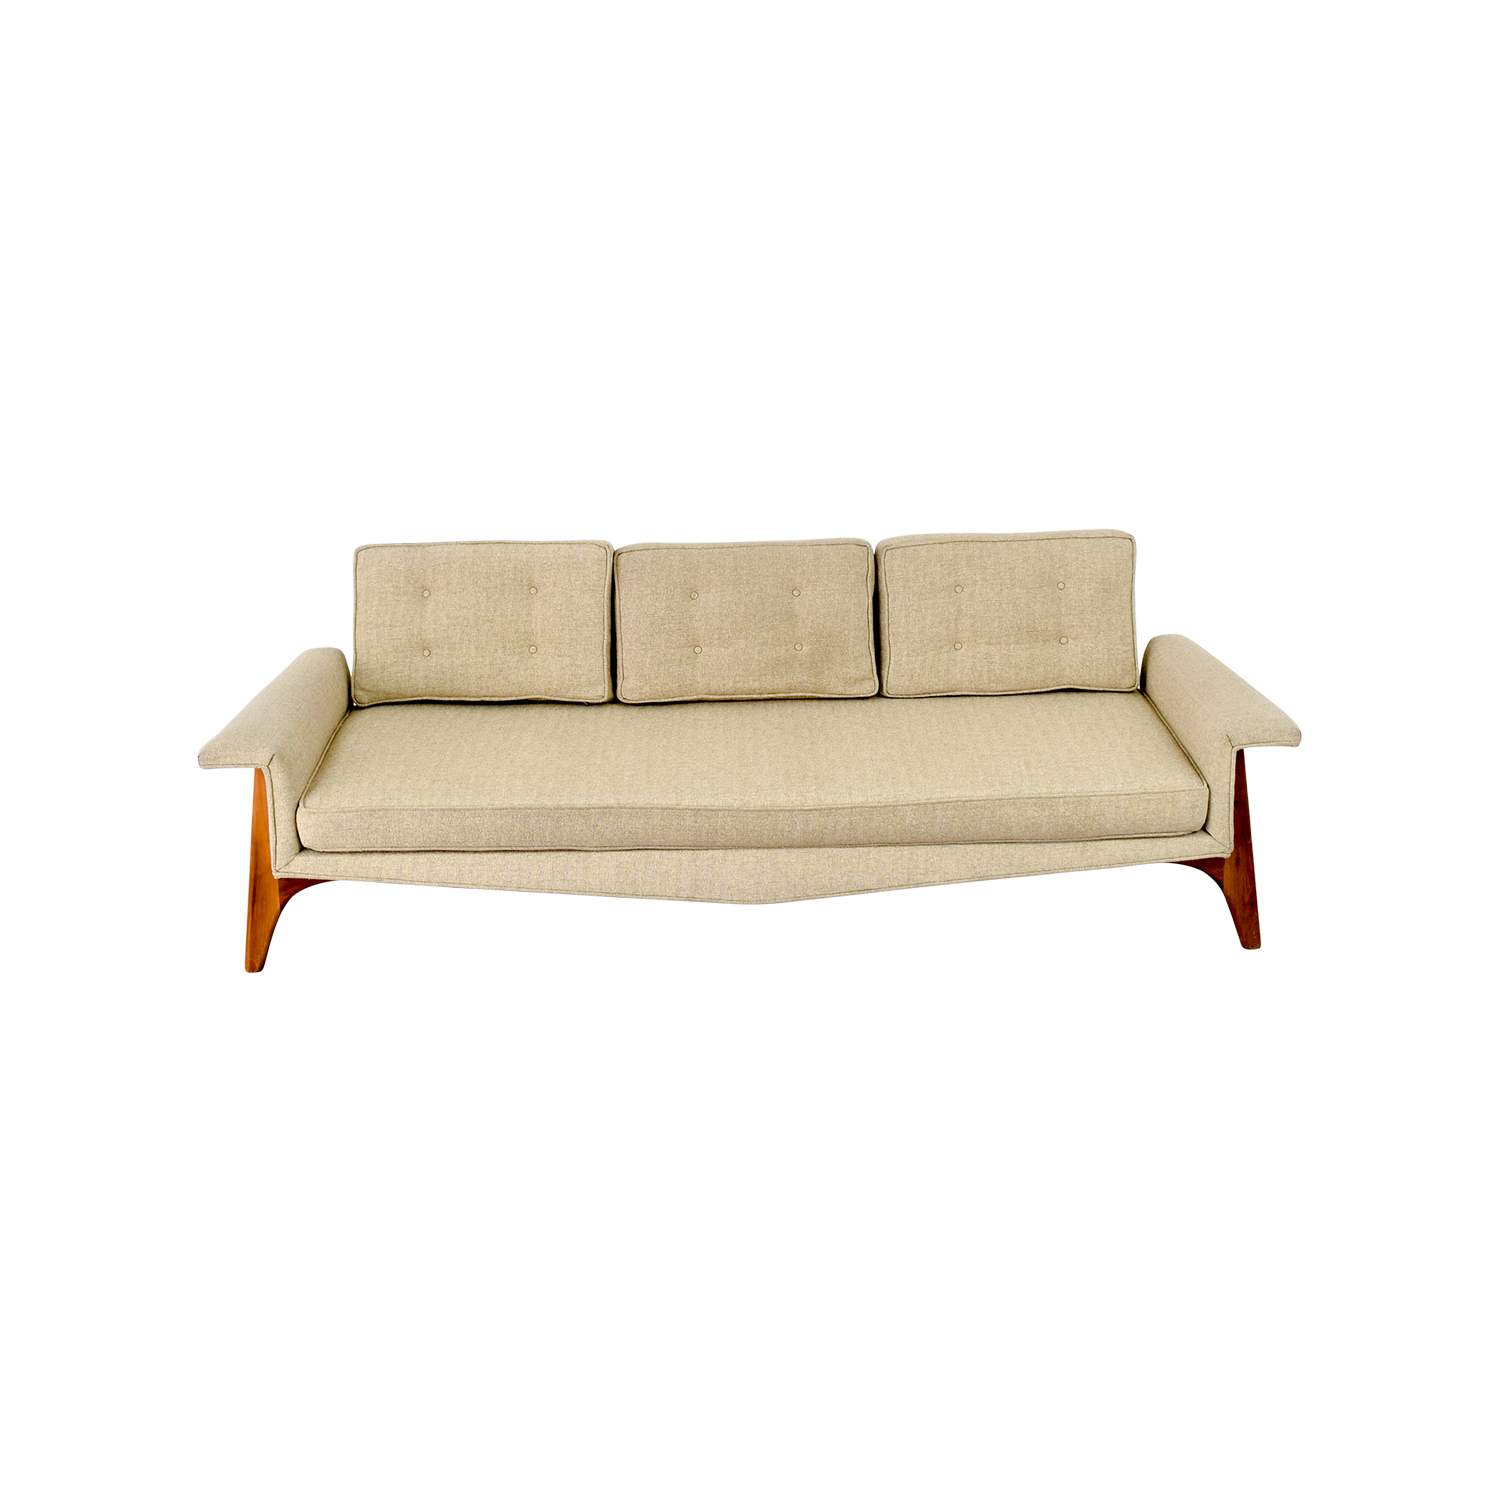 Adrian Pearsall for Craft Associates Mid-Century Sofa / Sofas